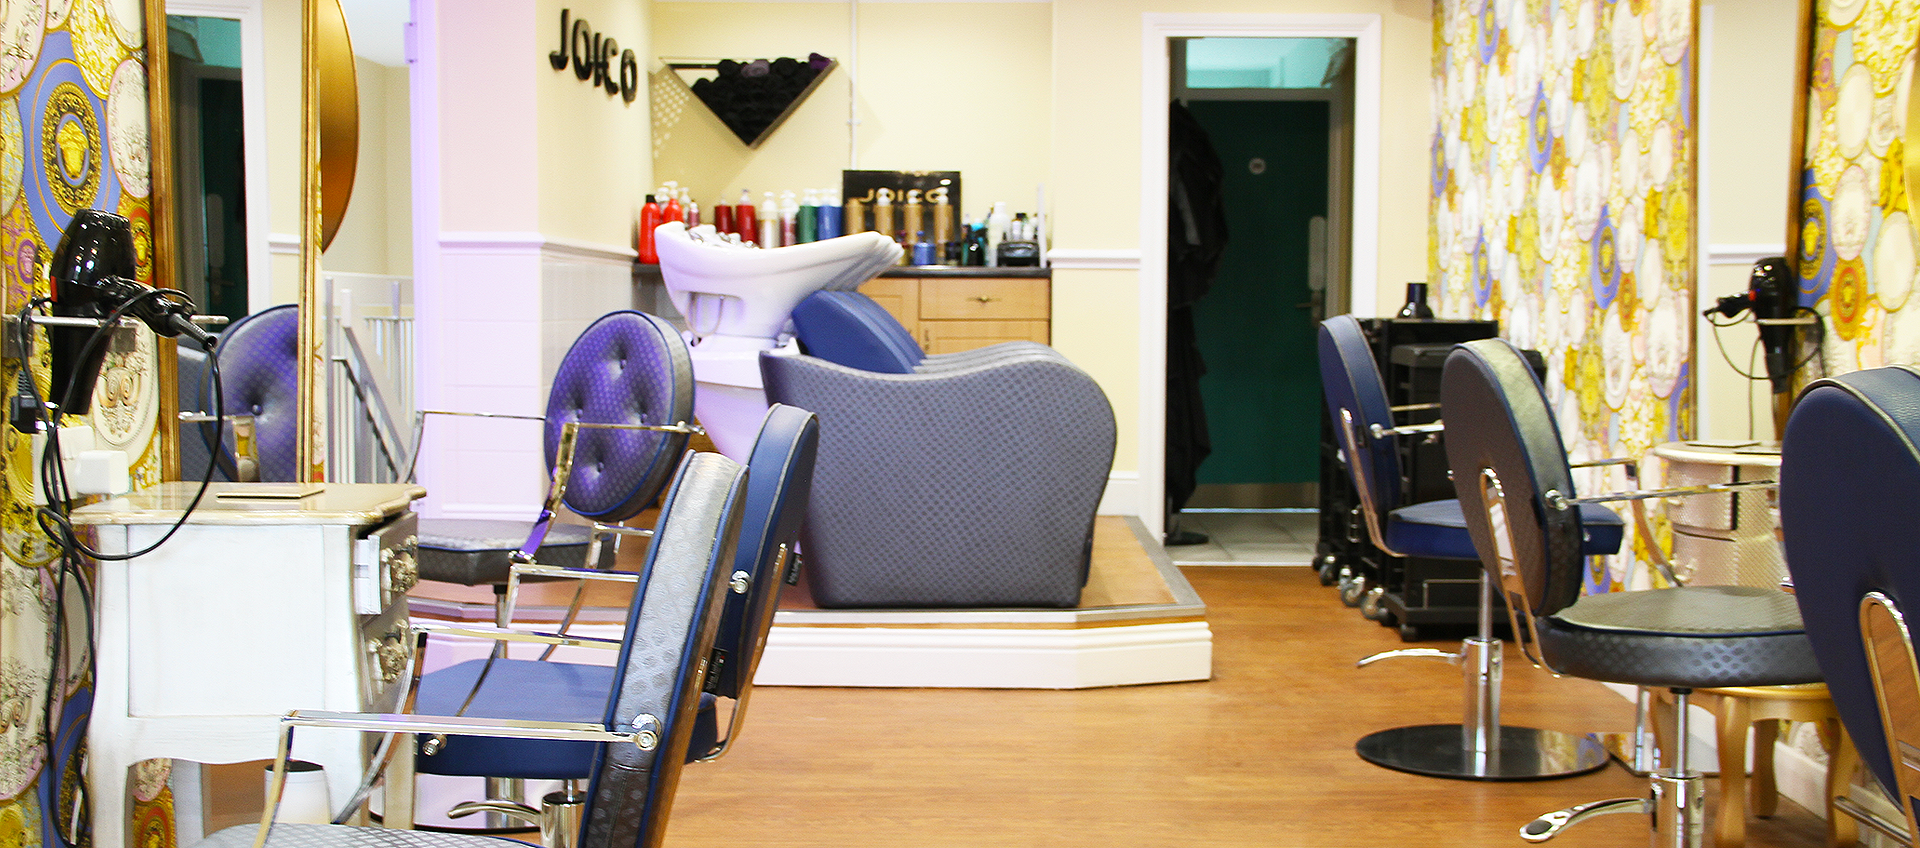 Indulge Hairdressing Inside Hair Salon Image Five